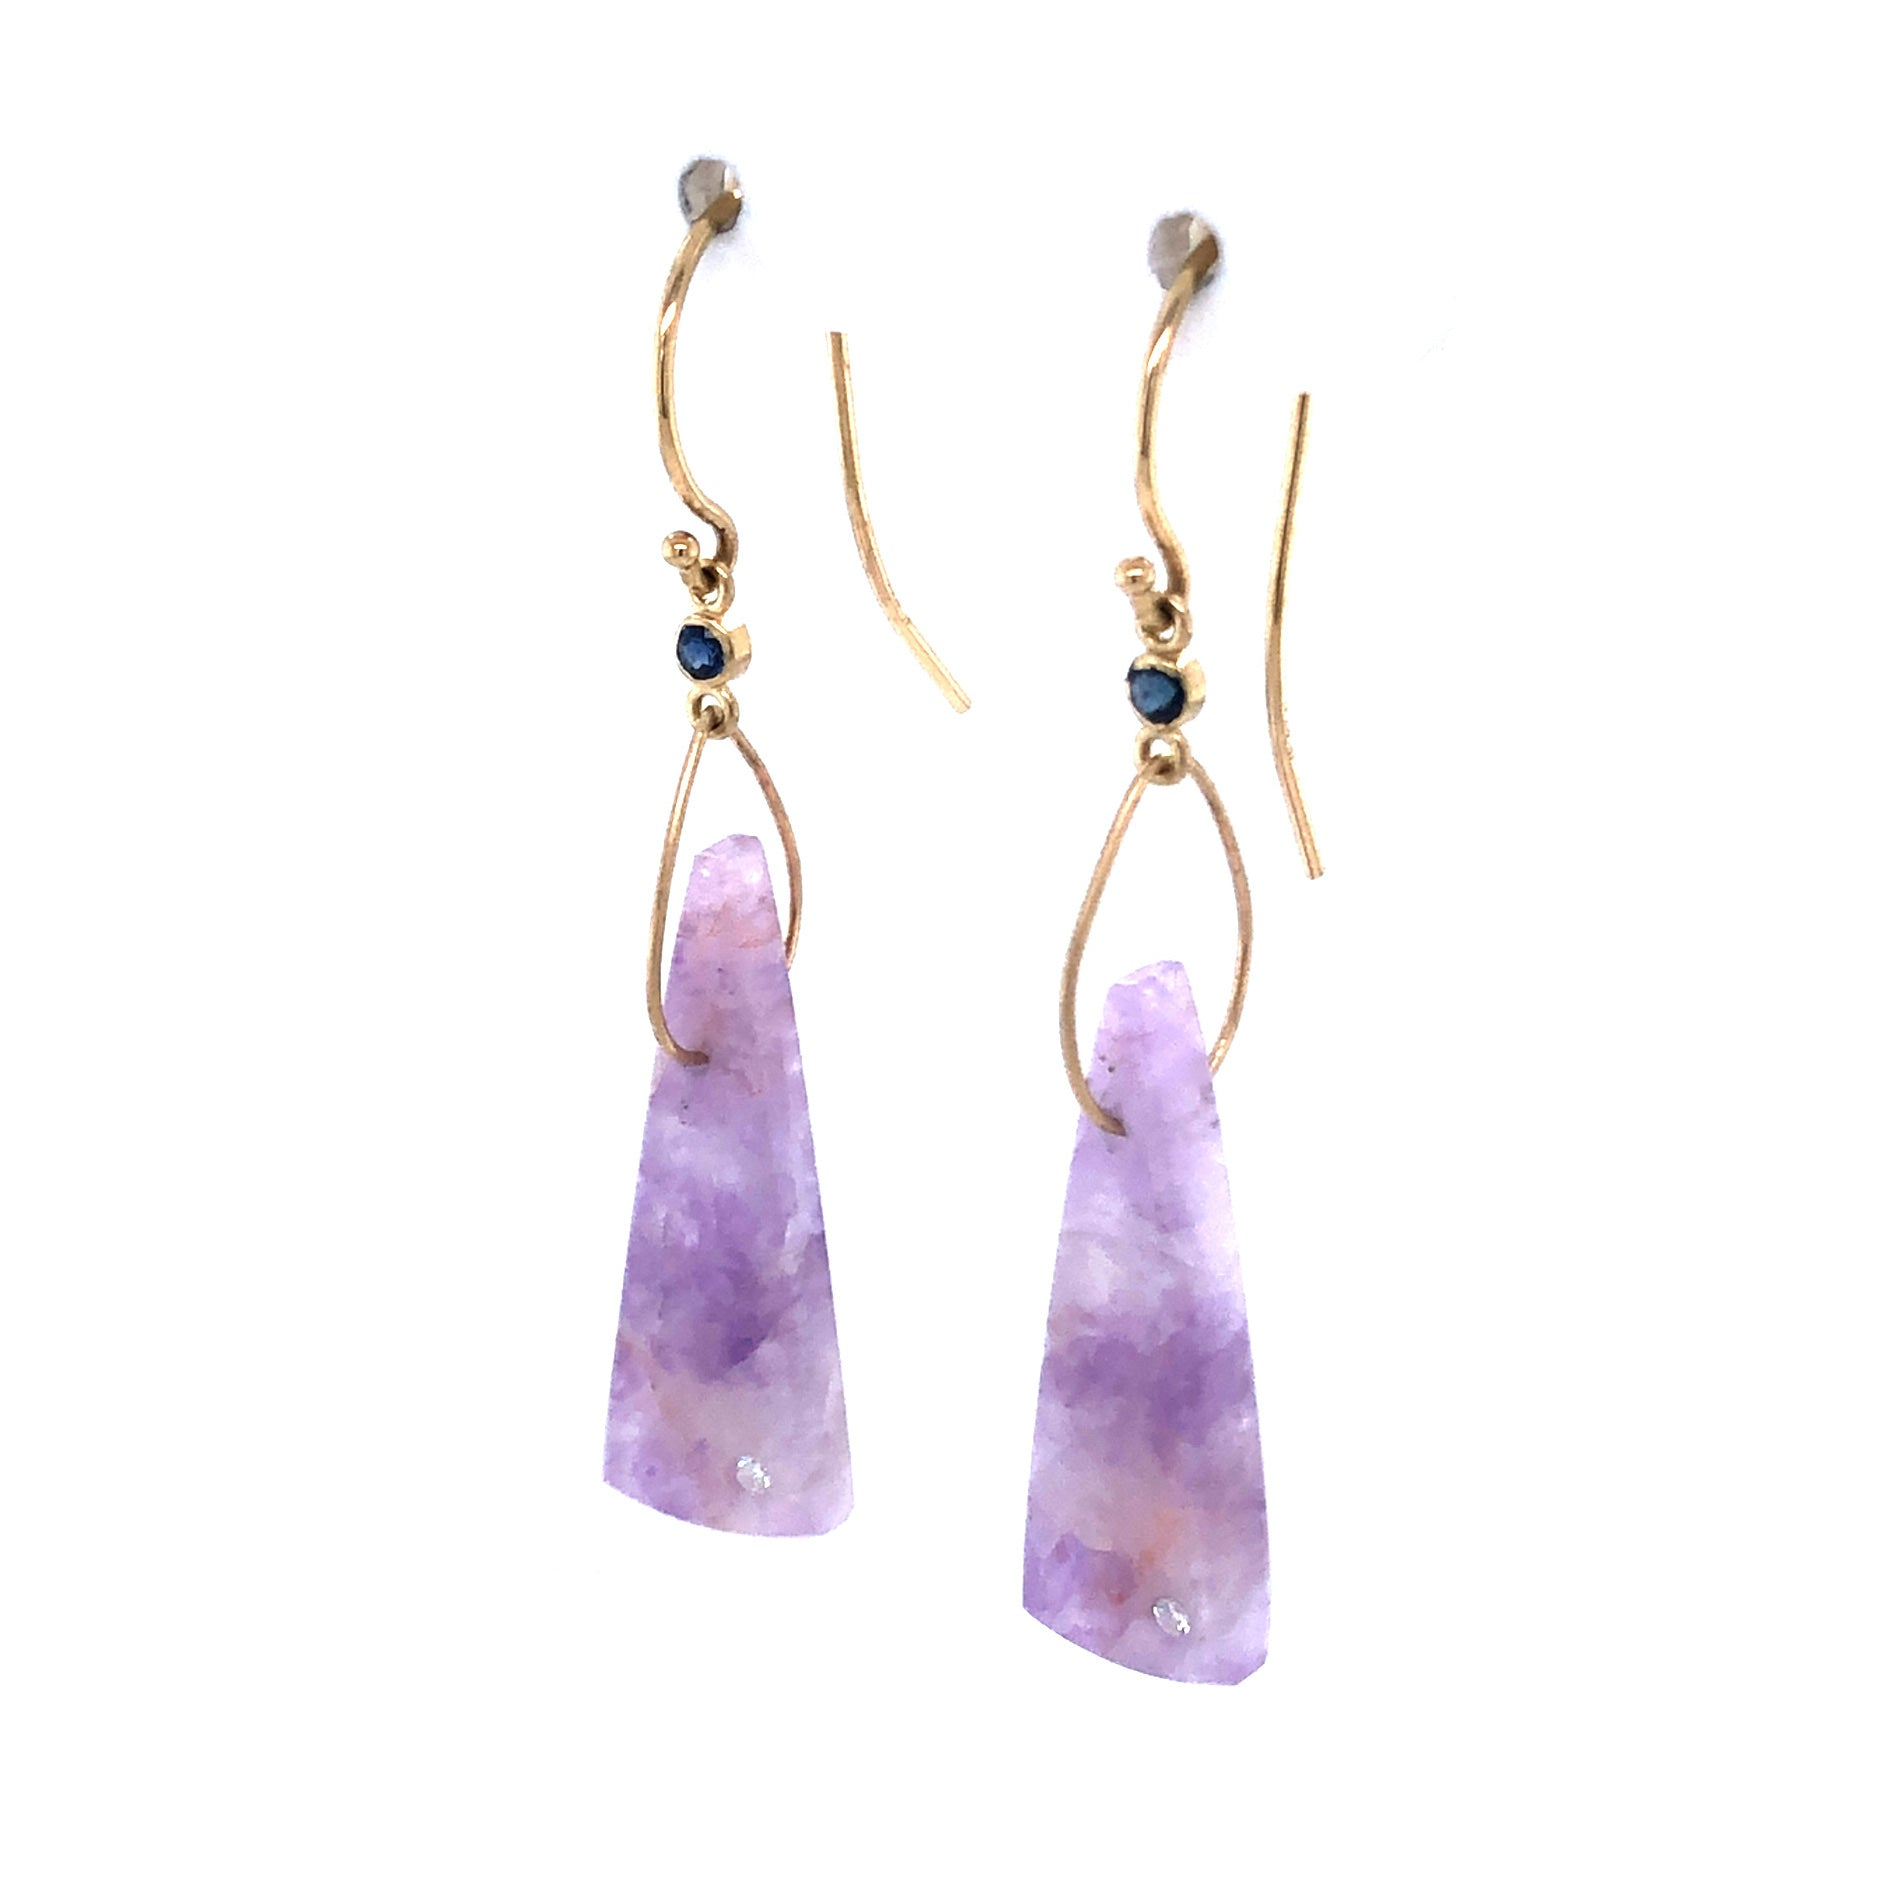 Amethyst, Sapphire, and Diamond Earrings, Handmade in 14k Gold